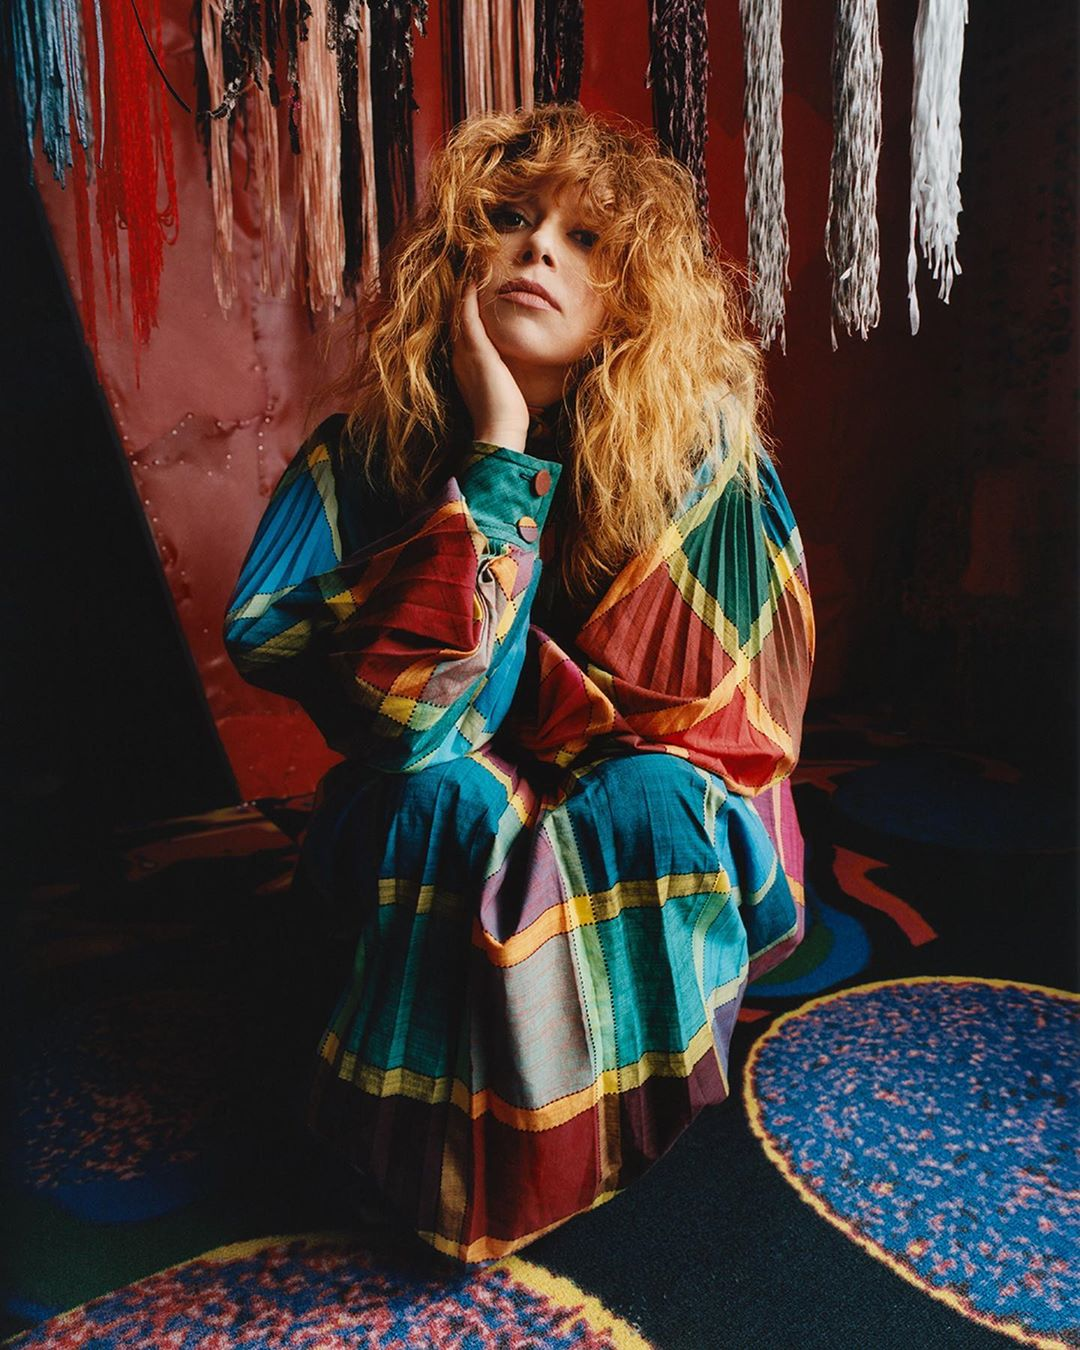 The Performers new episode in collaboration with @britishgq and @britishvogue is a deep-dive into @nlyonne s creative process.